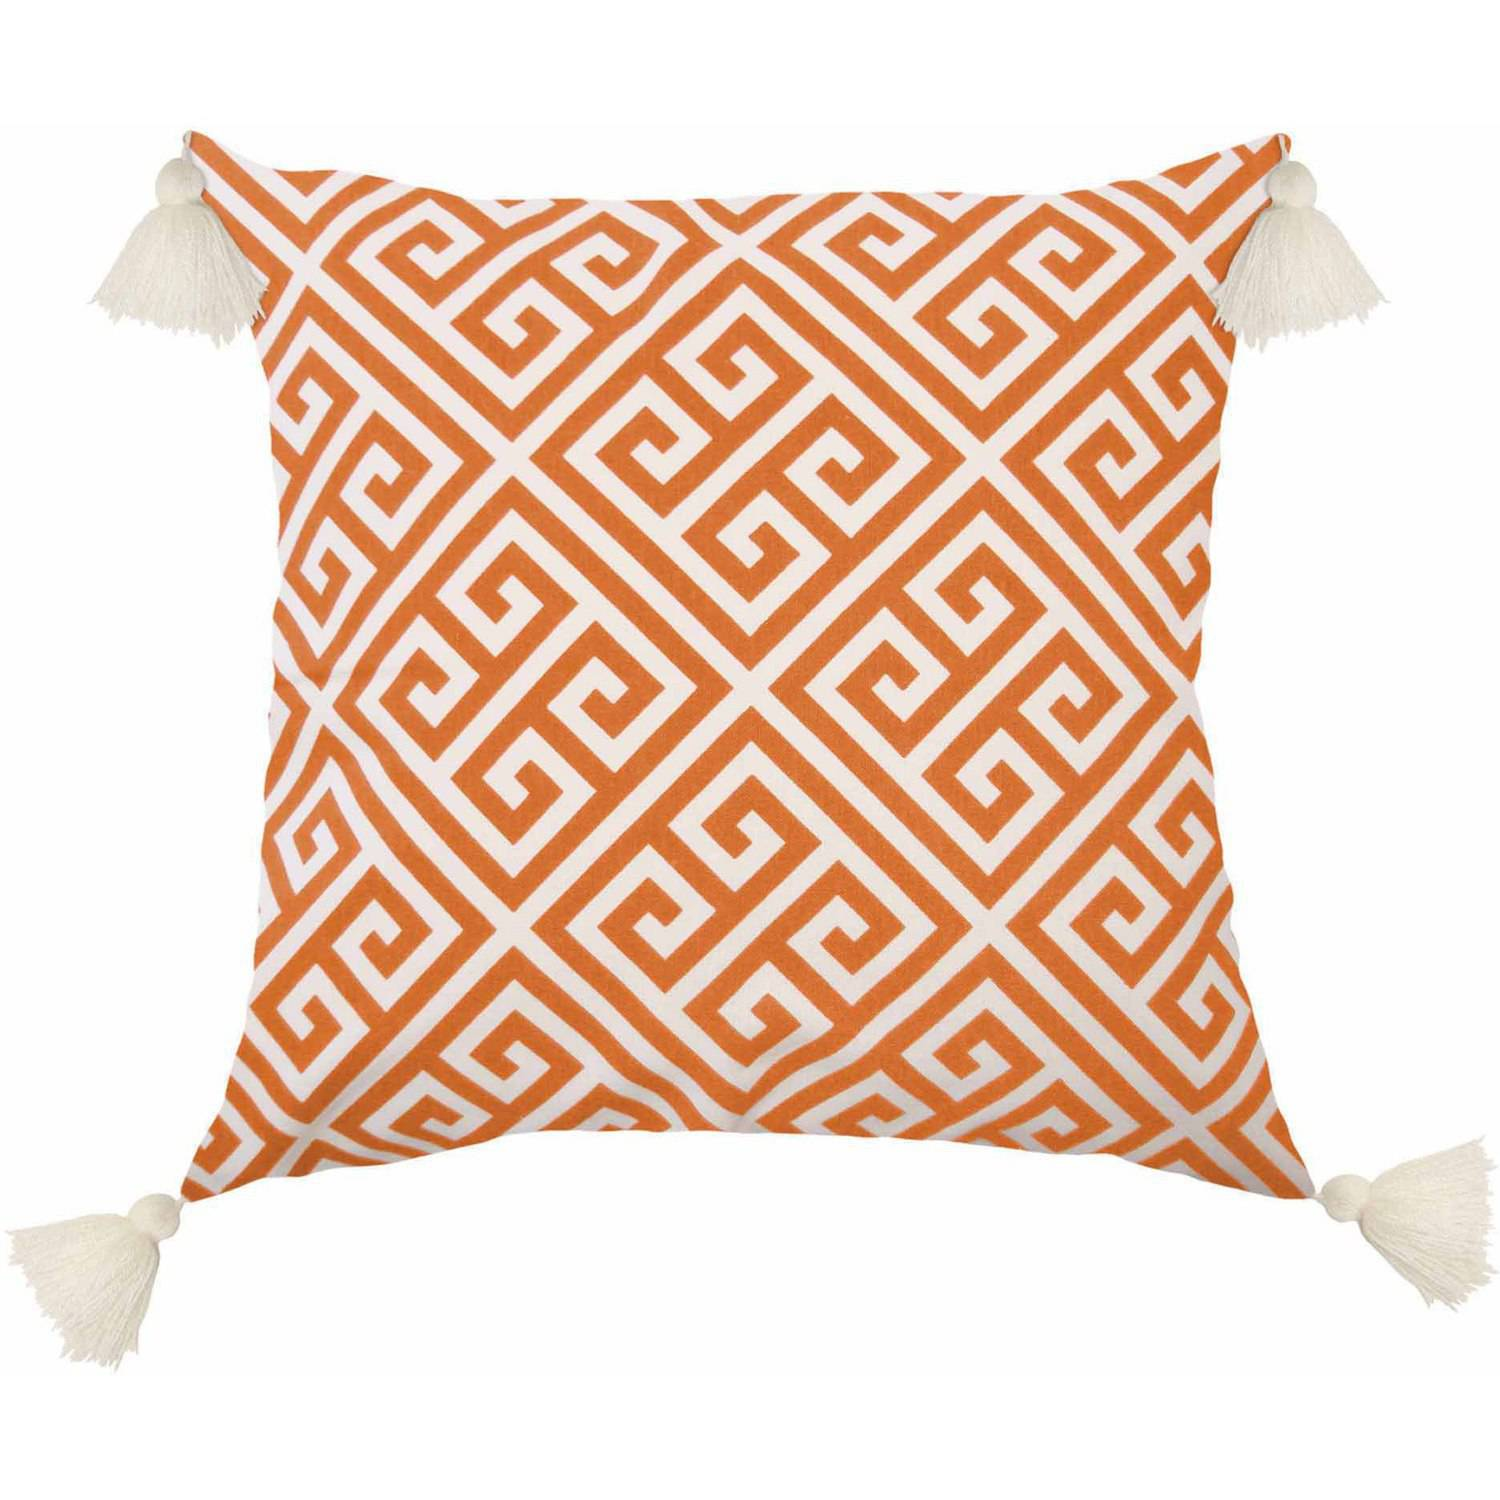 Better Homes and Gardens Greek Key Classic Pillow with Stylish Tassels